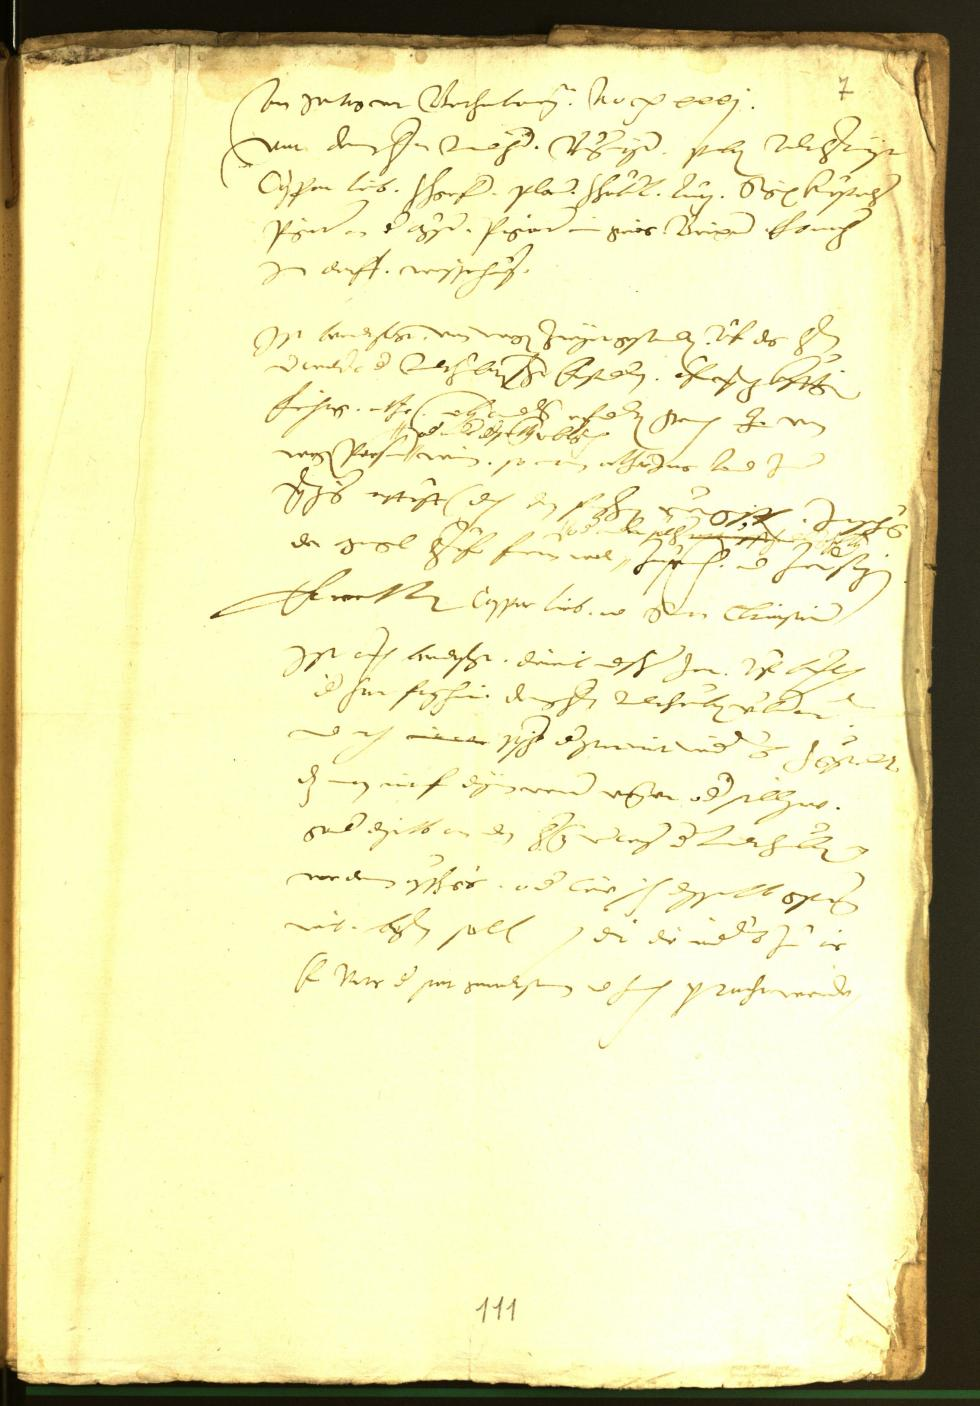 Civic Archives of Bozen-Bolzano - BOhisto Minutes of the council 1531